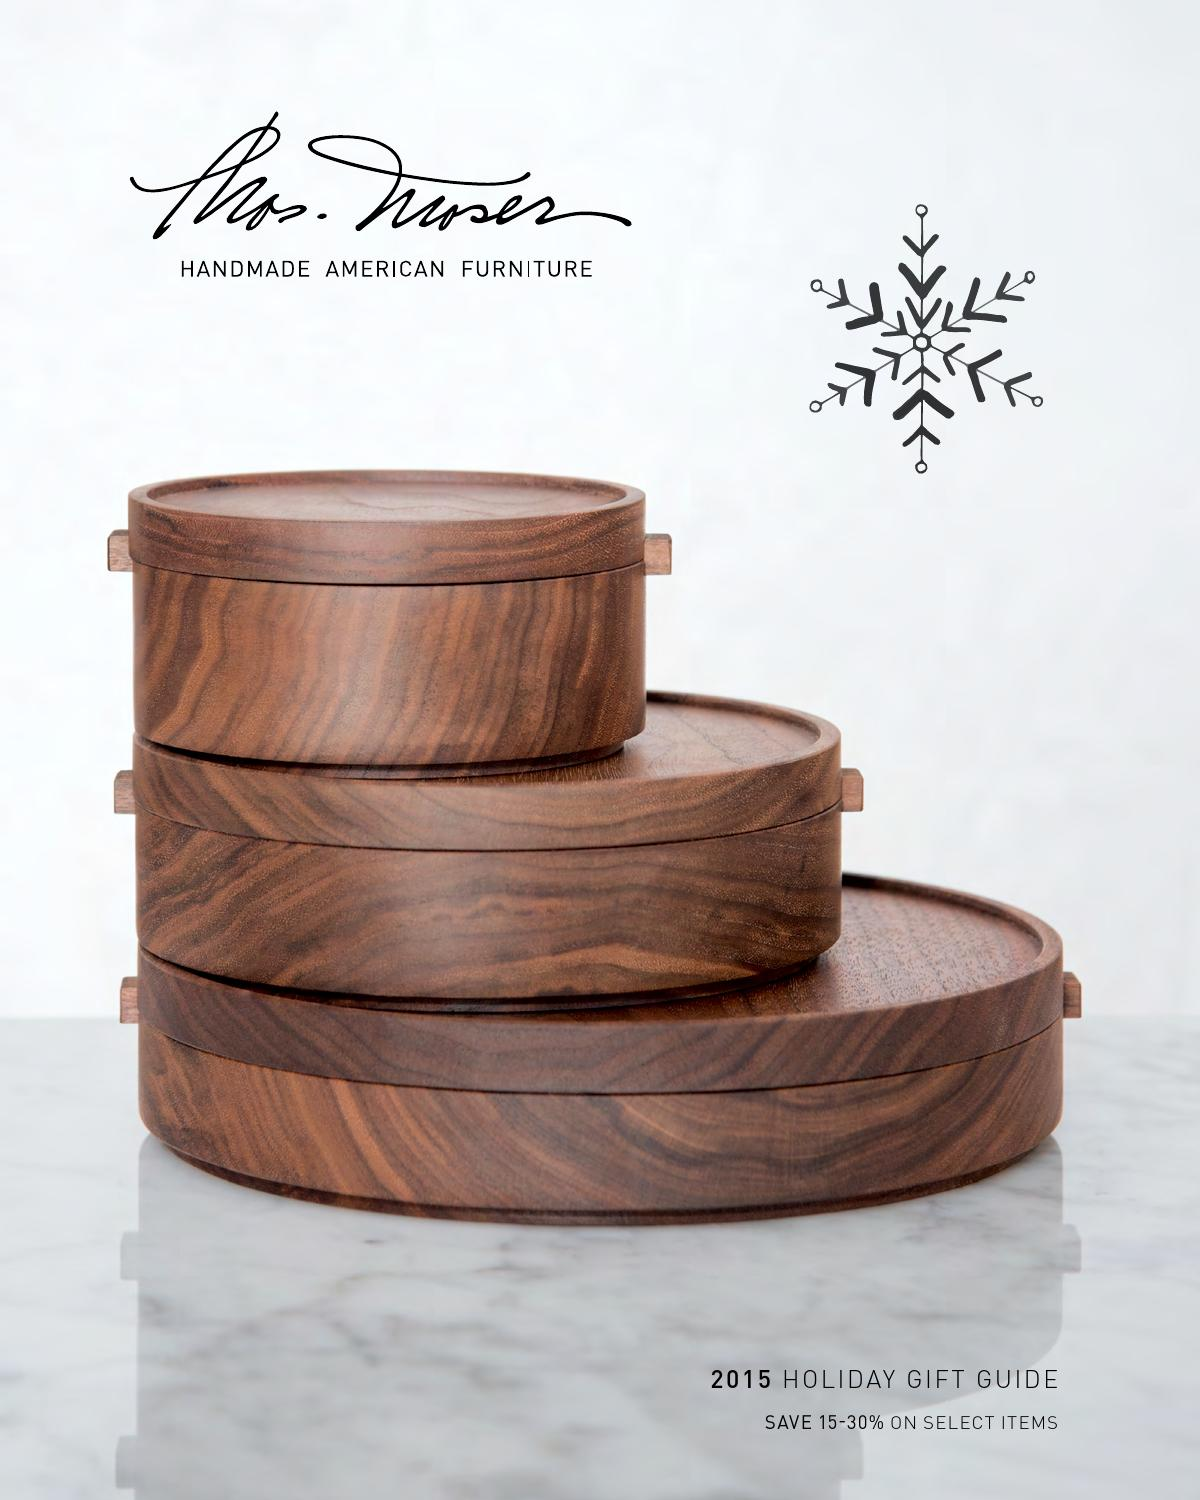 Thos Moser Holiday Gift Guide 2015 By Thos Moser Handmade American Furniture Issuu